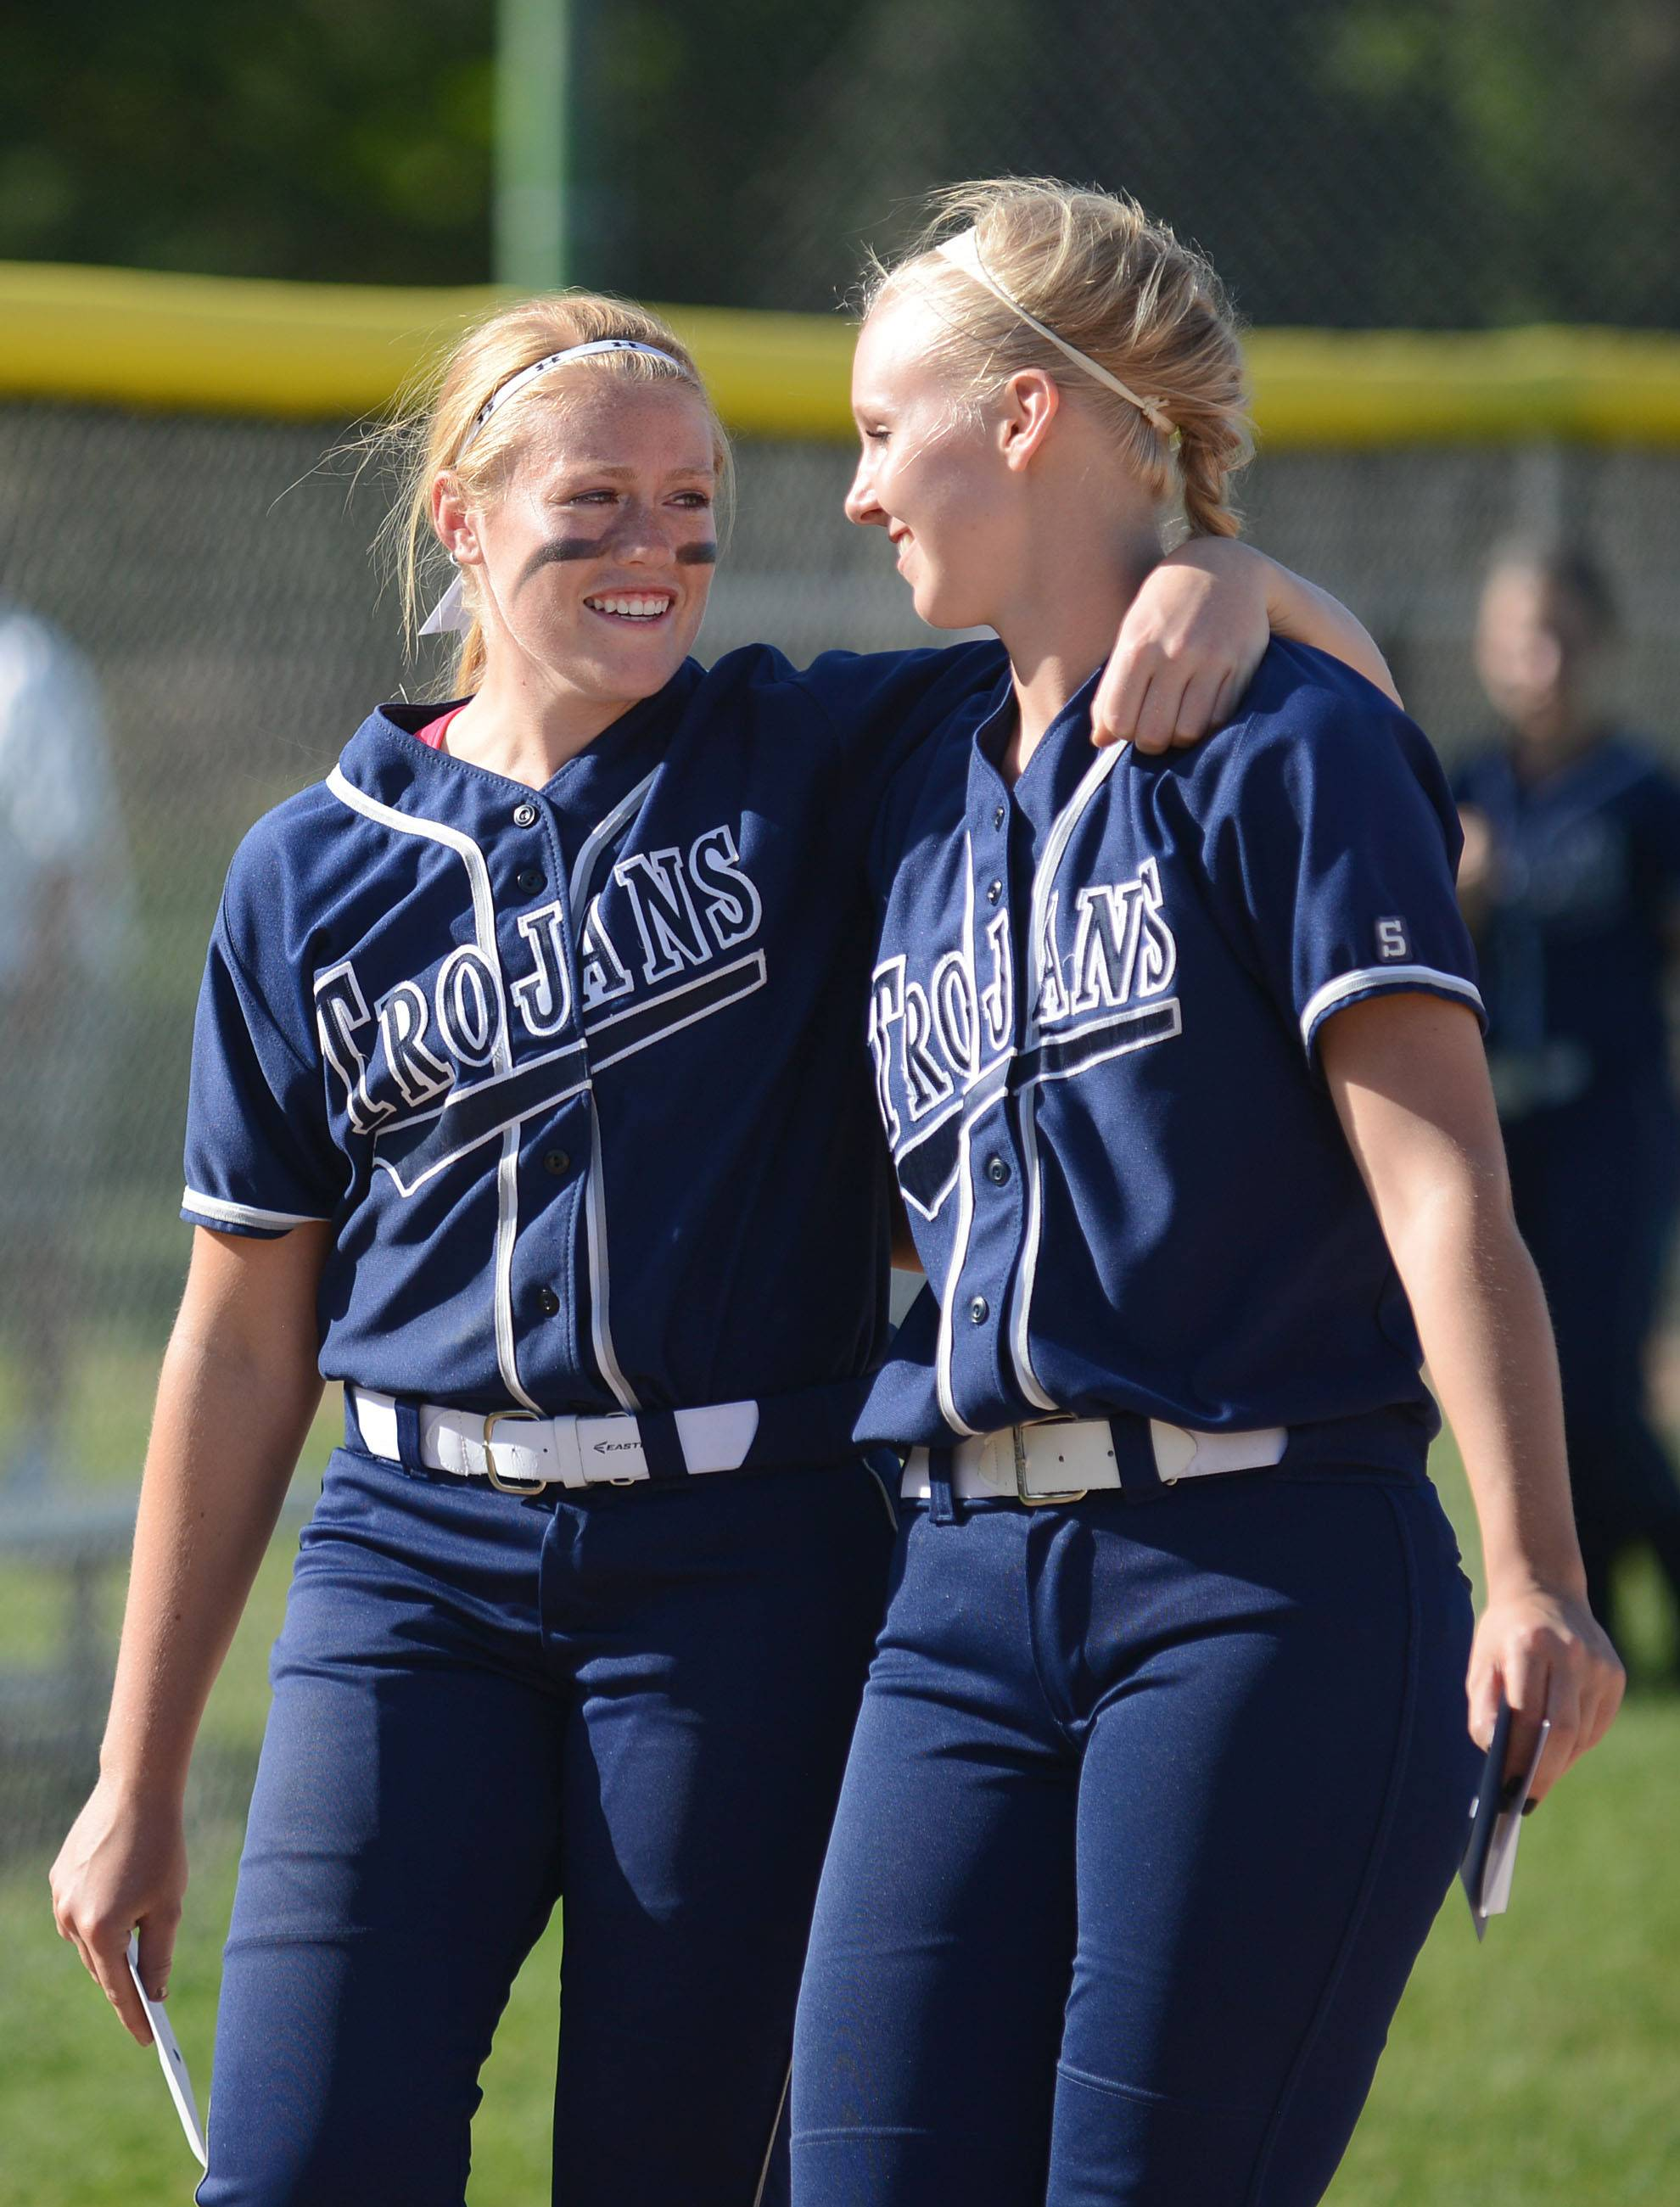 Cary-Grove's Kat Panos, left, and Liz Sweeney leave the field together after the Trojans' loss to Barrington in the Class 4A girls softball regional championship in Cary on Friday, May 30.